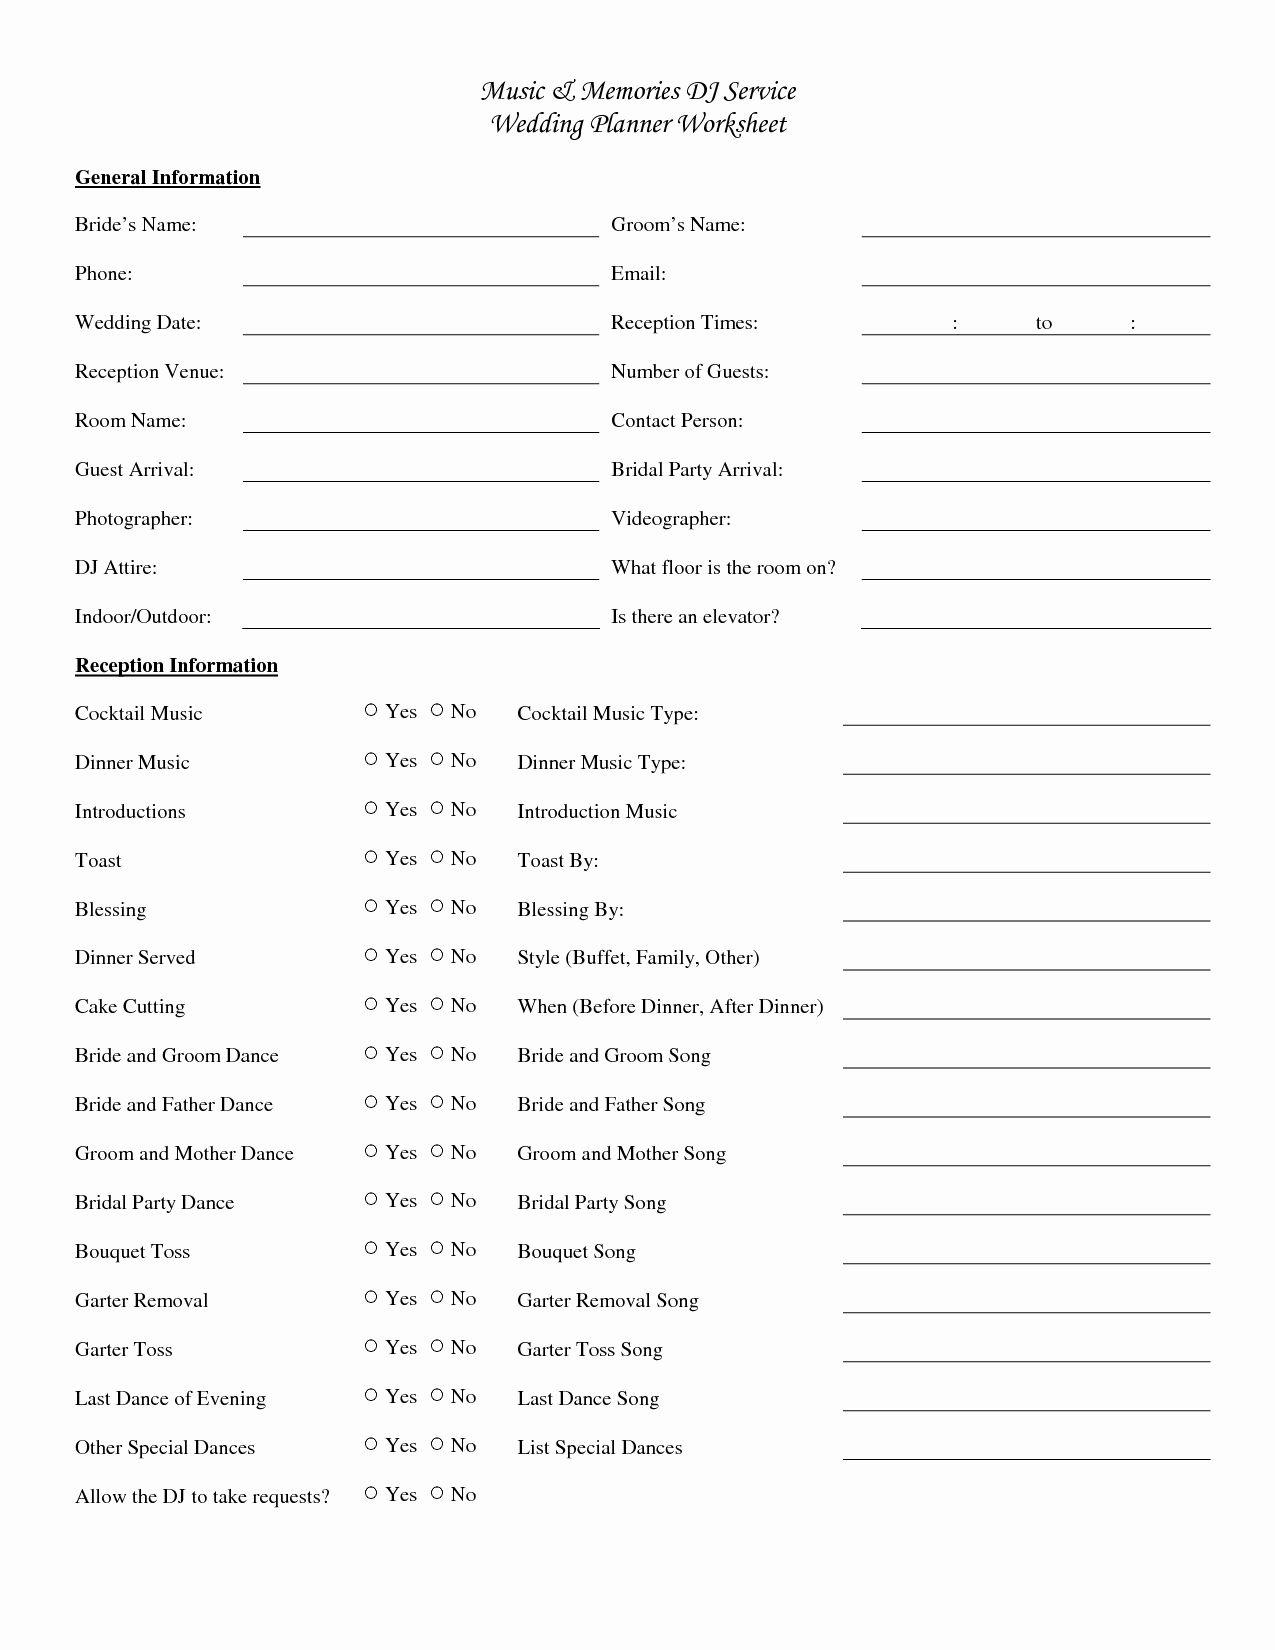 Event Planning Form Template Inspirational Wedding Music Checklist Printable In 2020 Wedding Planning Worksheet Wedding Reception Timeline Wedding Reception Checklist